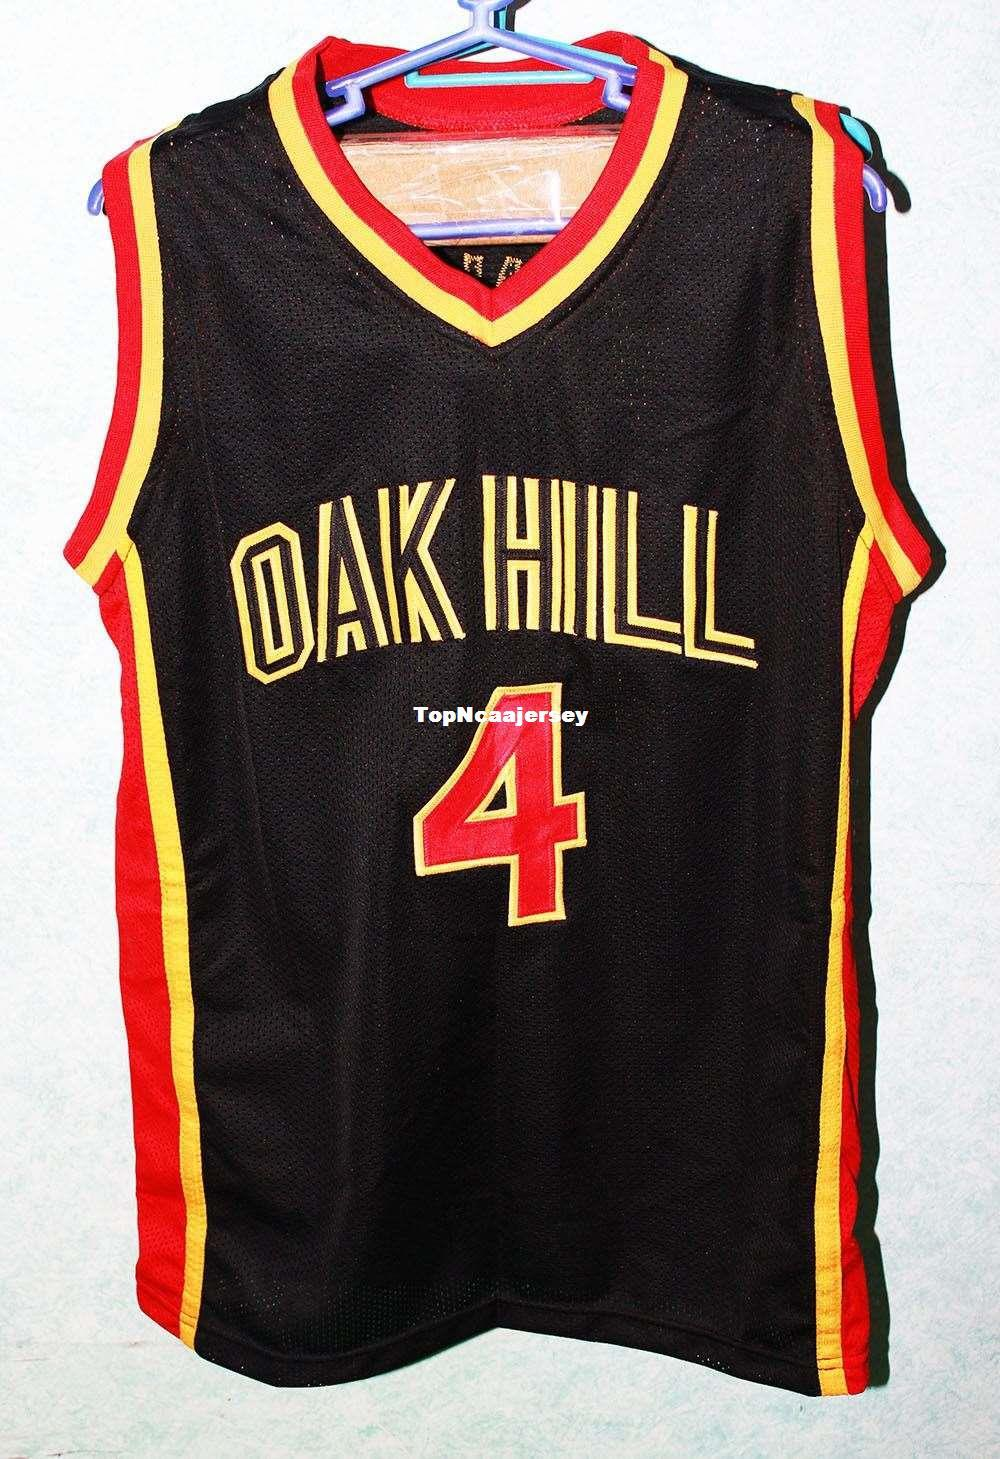 2019 Cheap Custom RAJON RONDO  4 OAK HILL High School Basketball Jersey  Stitched Customize Any Size And Name From Topncaajersey 313b5c20b